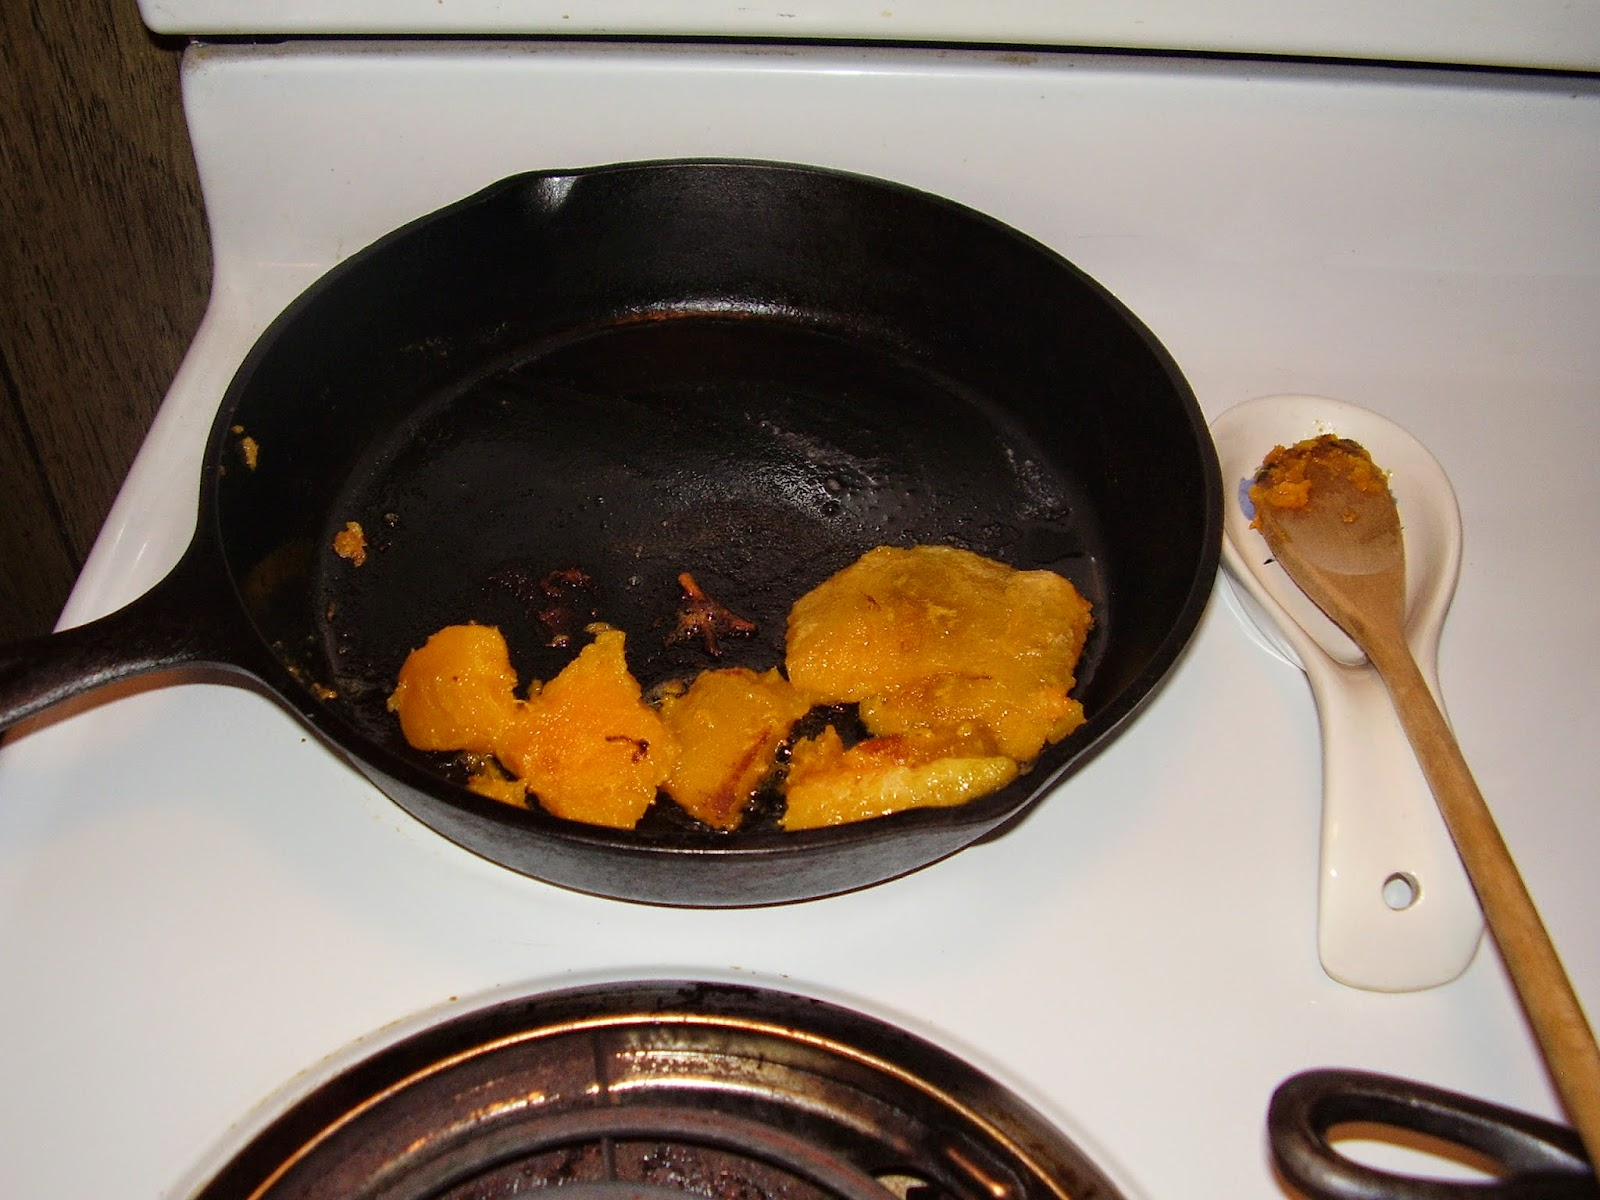 Squash in cast iron frying pan.